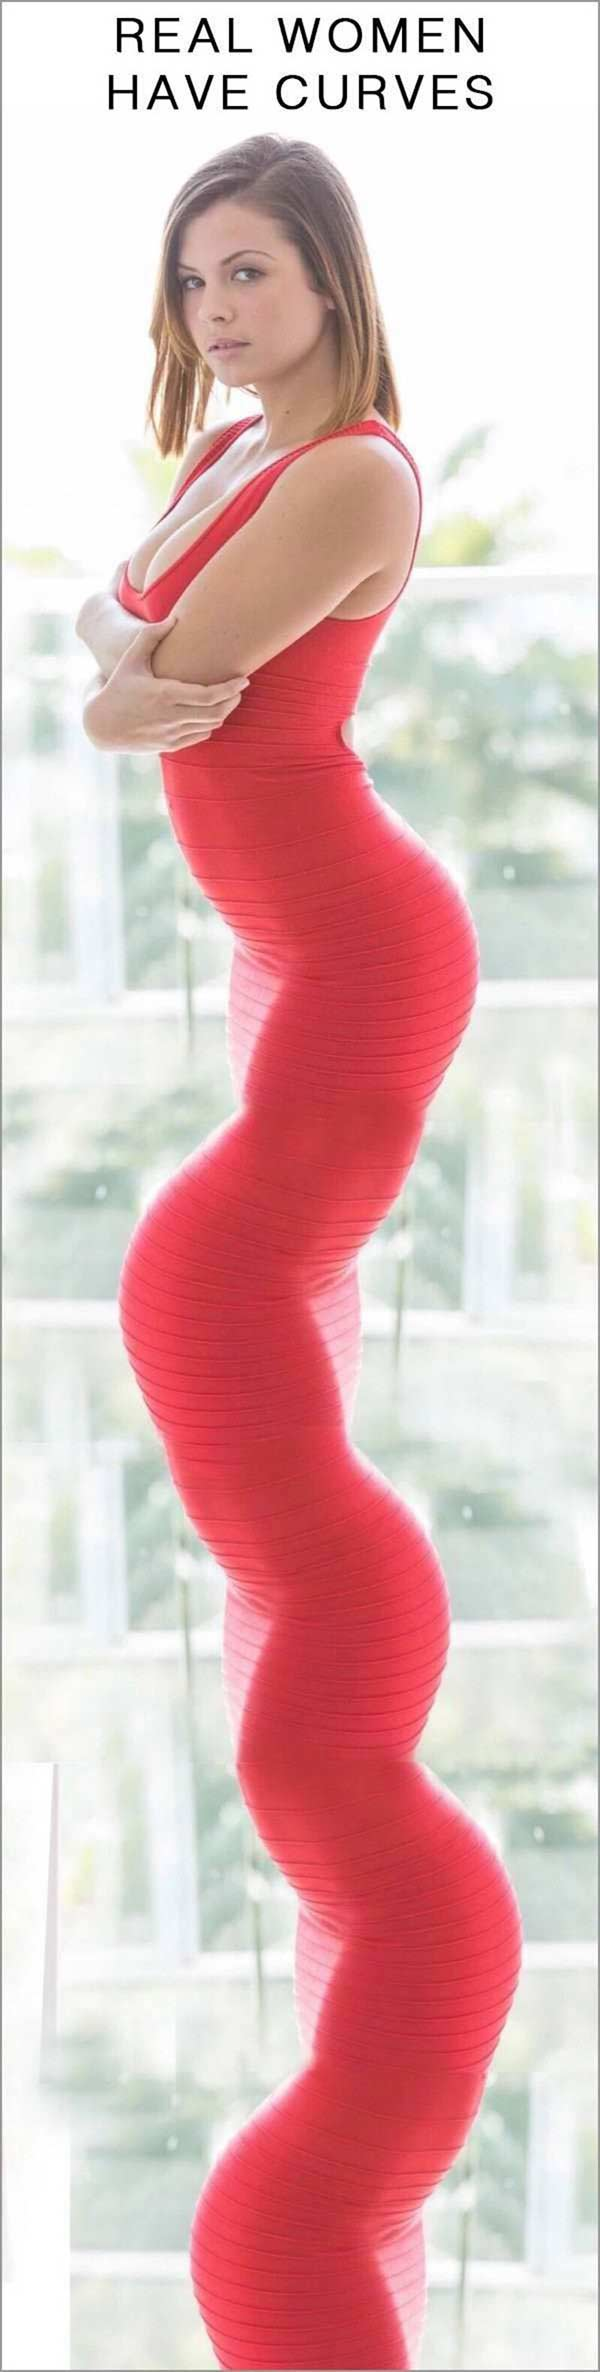 33 Funny Pictures ~ real women have curves